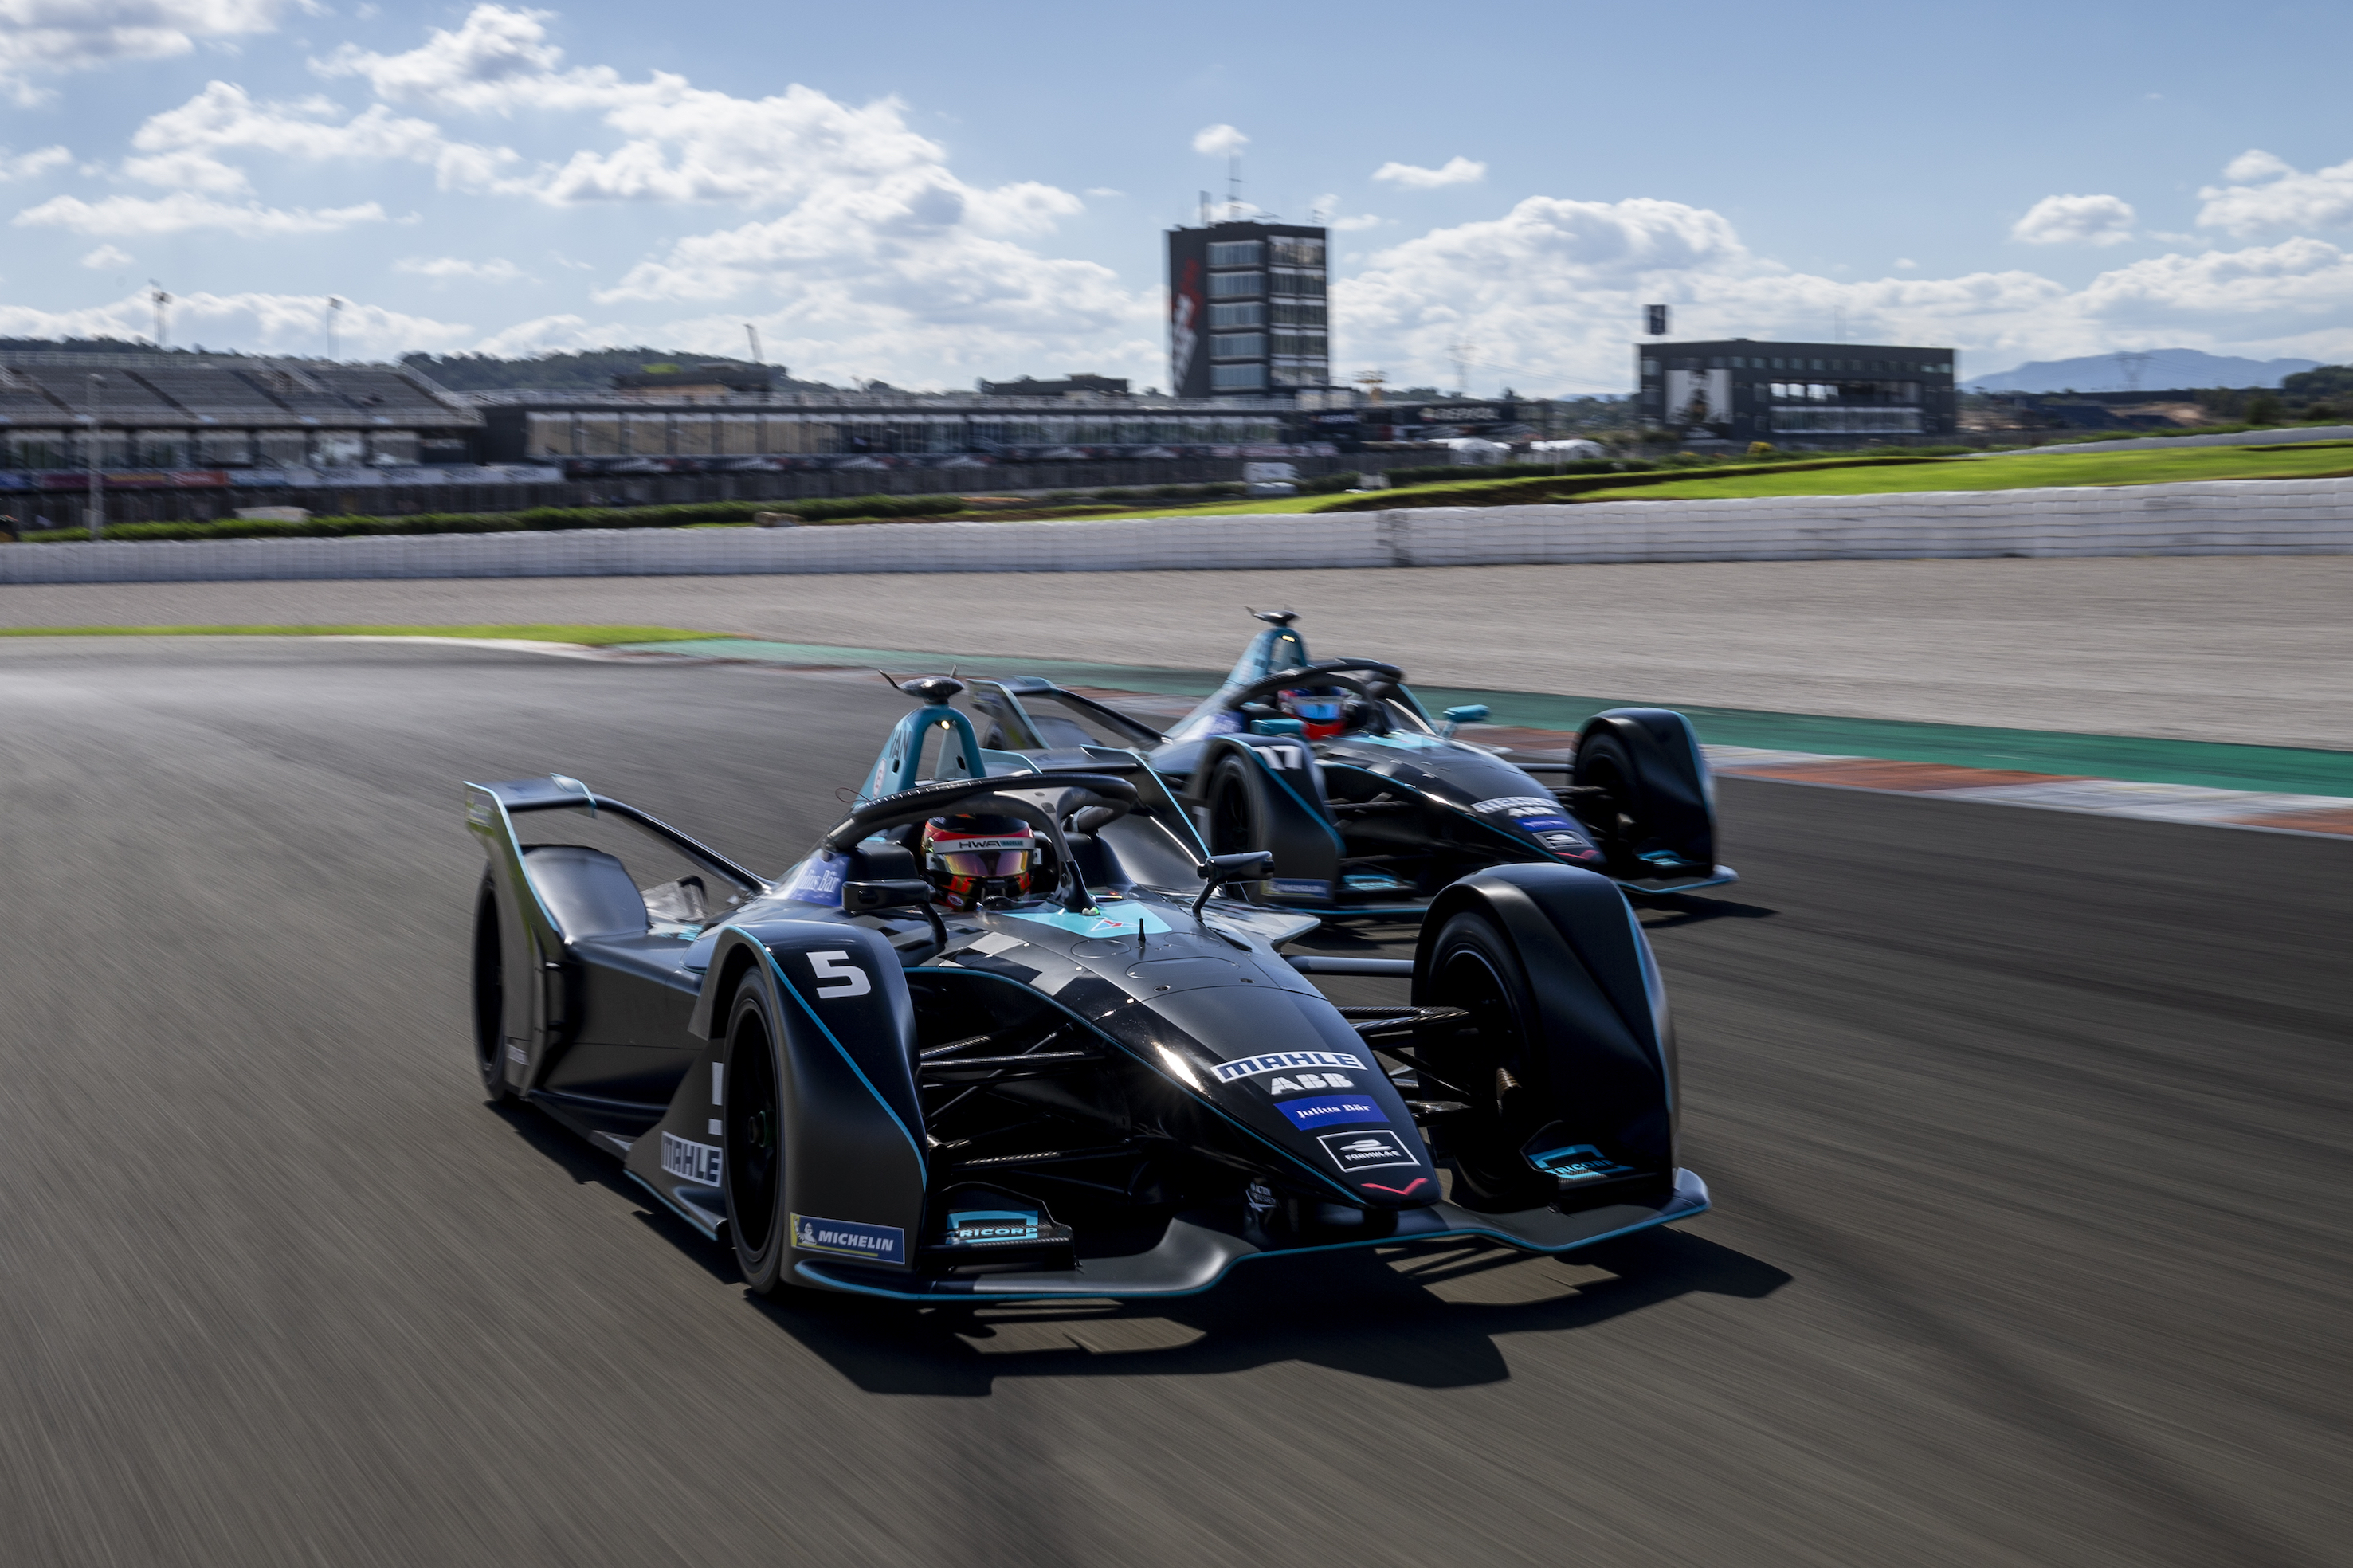 HWA-RACELAB-Valencia-Formula-E-Test-both-Cars